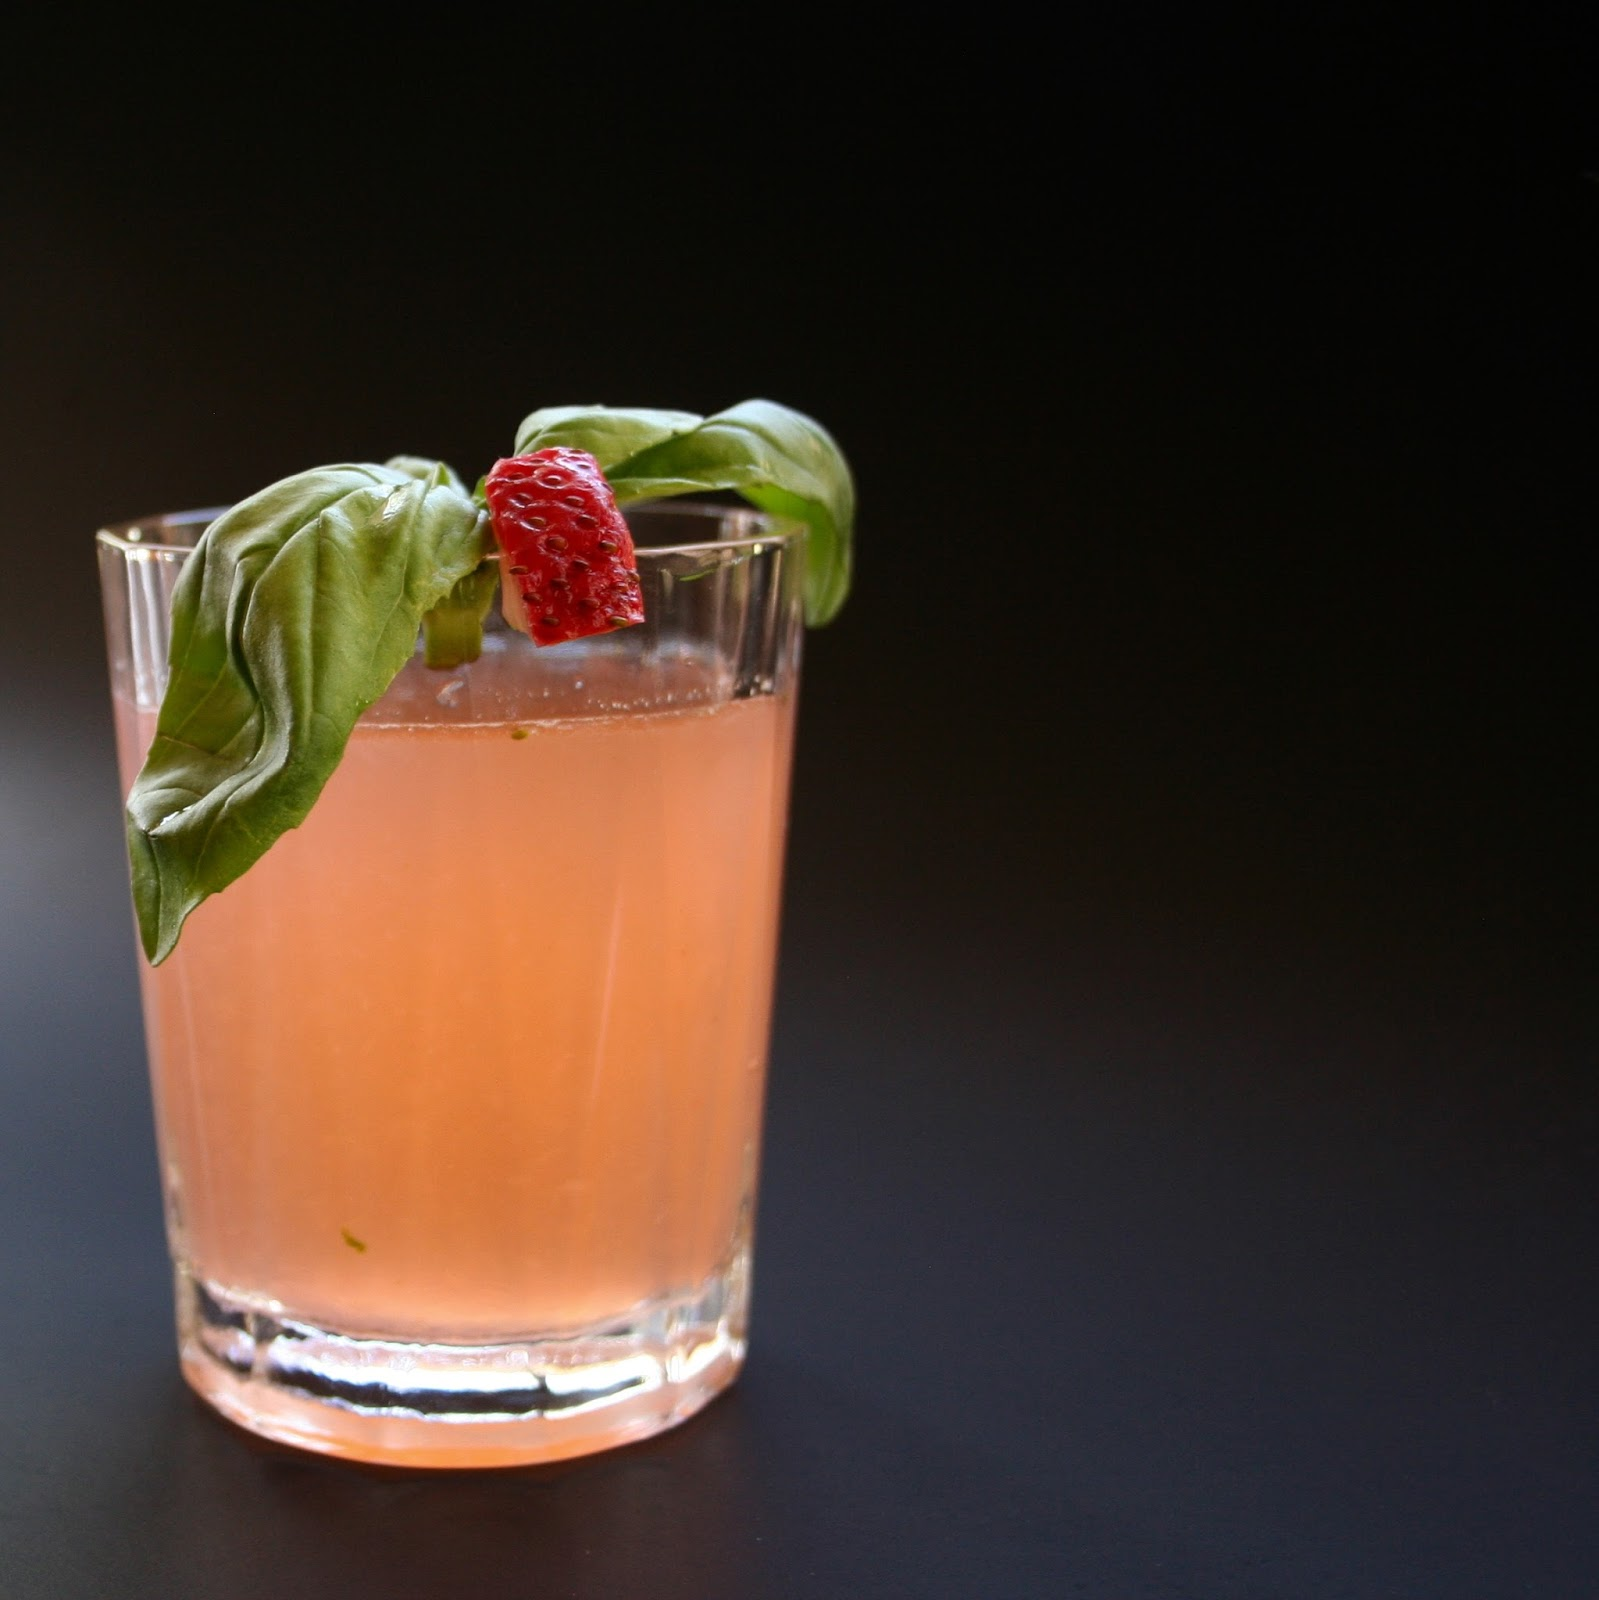 Spiked Strawberry Basil Lemonade